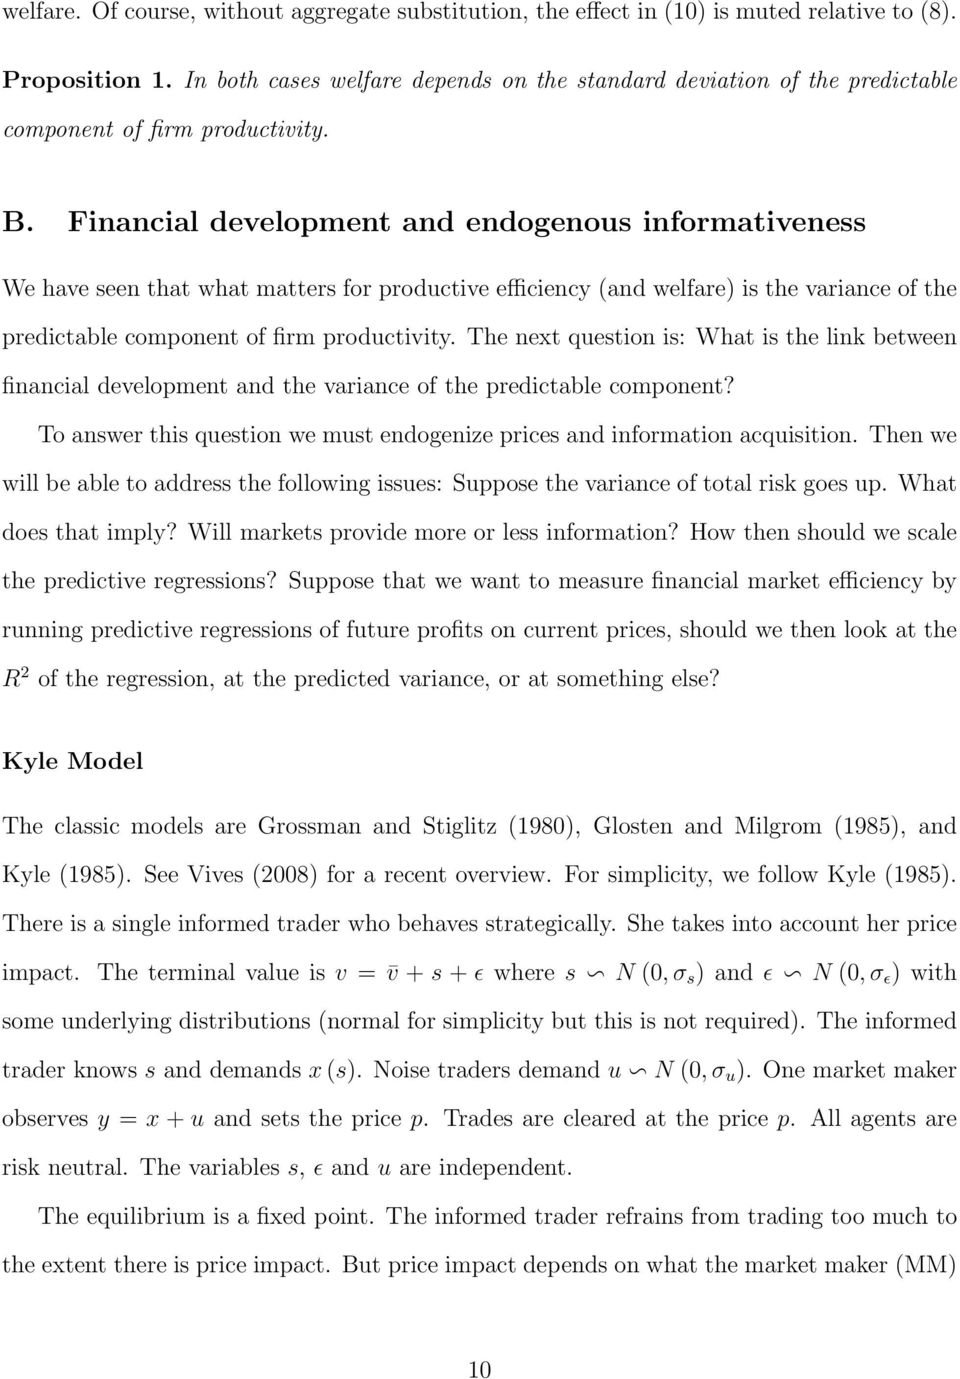 Financial development and endogenous informativeness We have seen that what matters for productive efficiency (and welfare) is the variance of the predictable component of firm productivity.